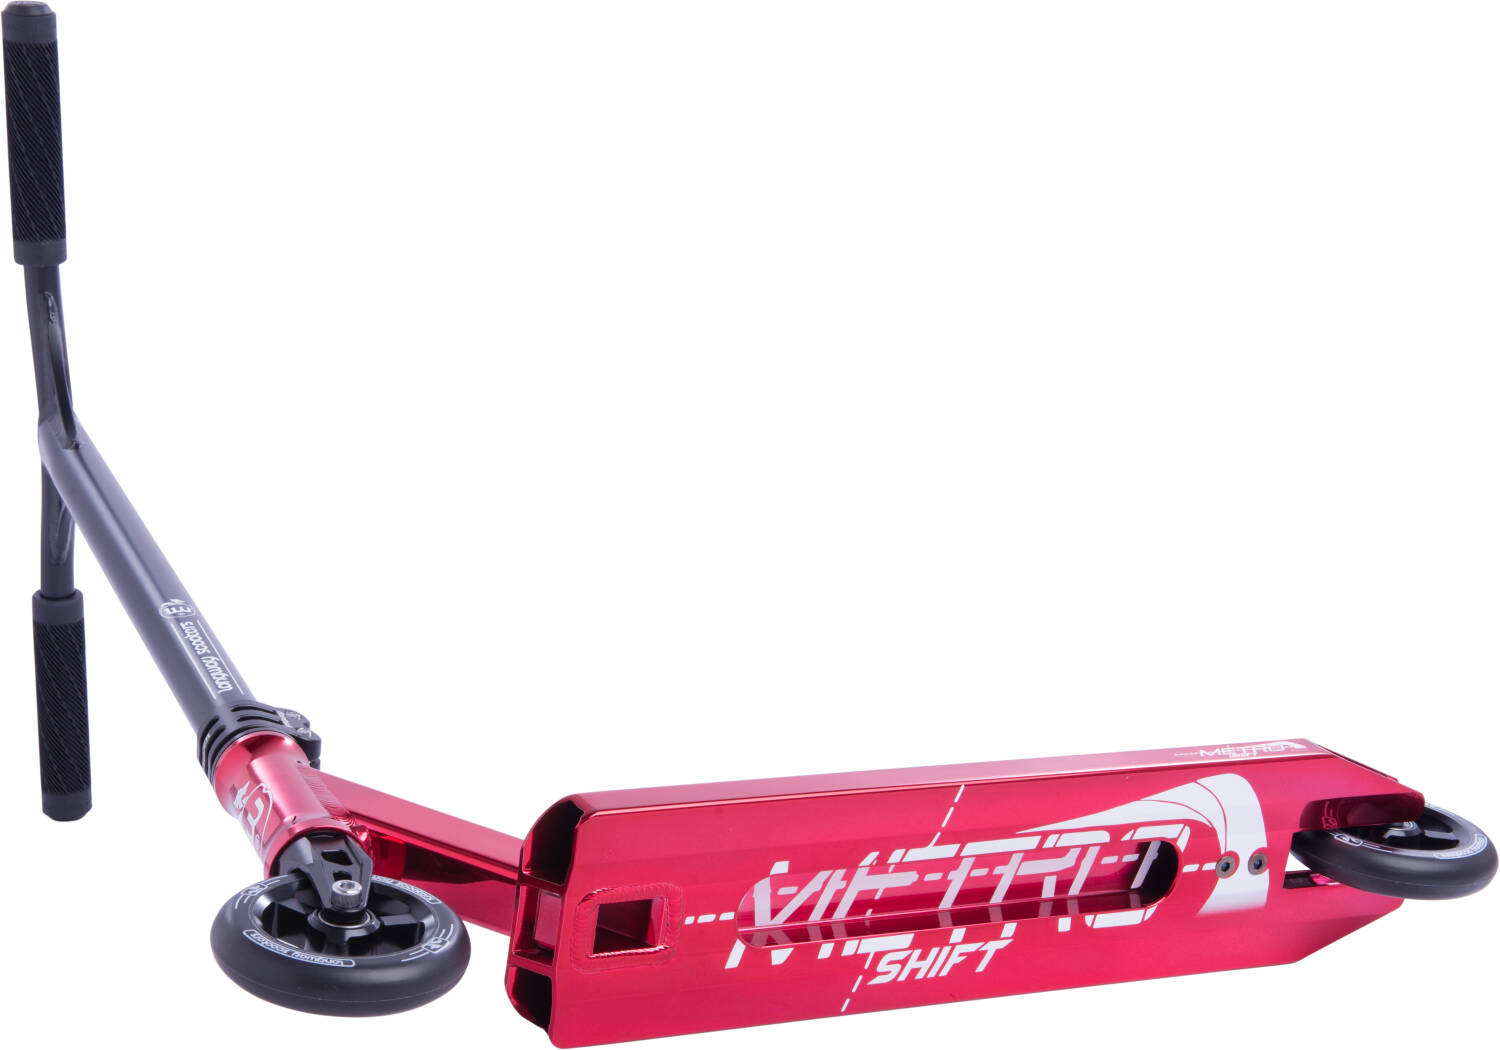 Longway Metro Shift Pro Scooter - Ruby